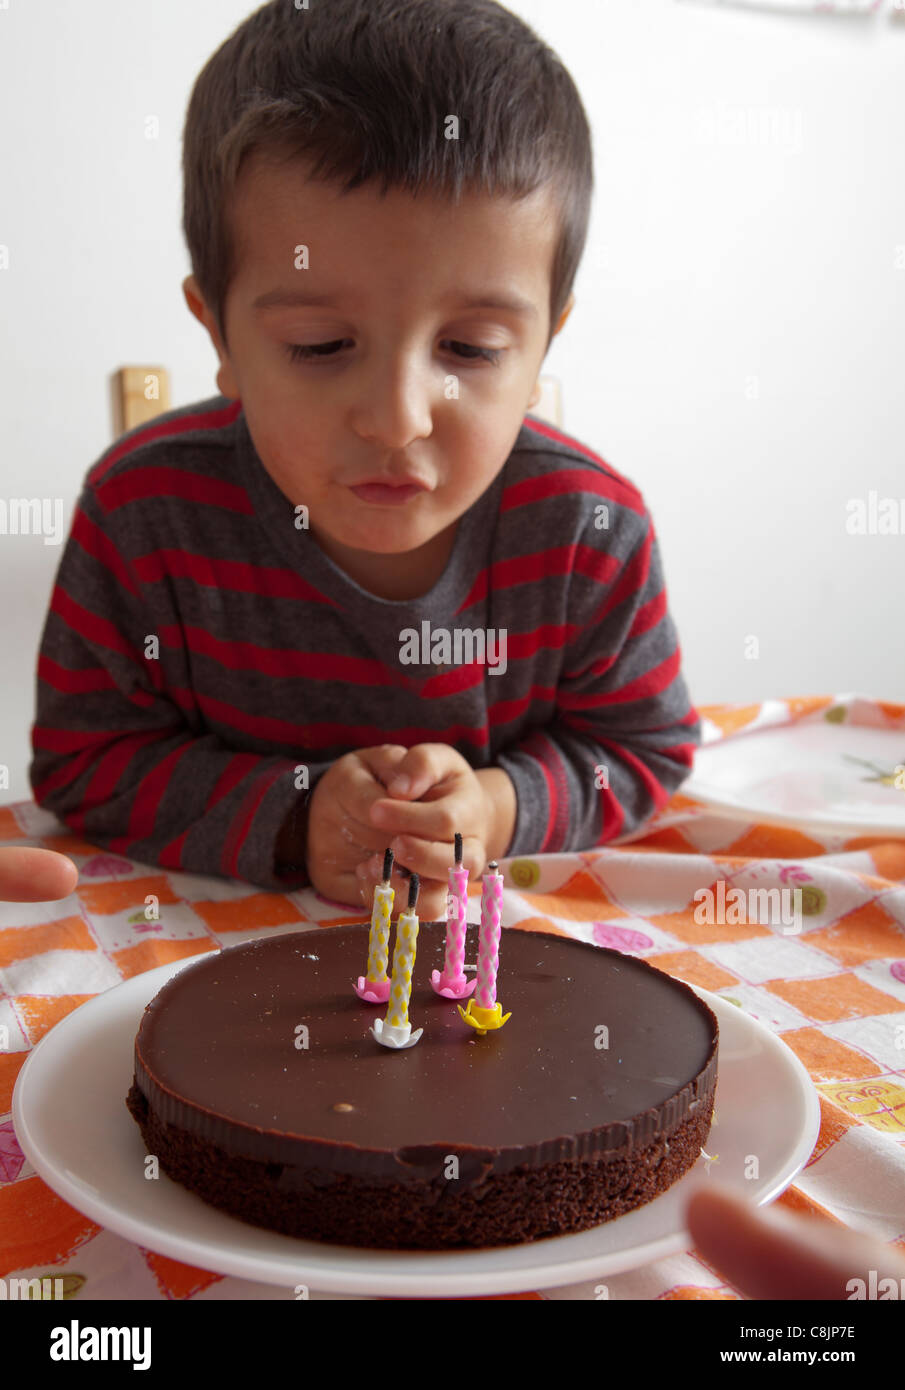 3 Years Old Boy Looking At His Birthday Cake